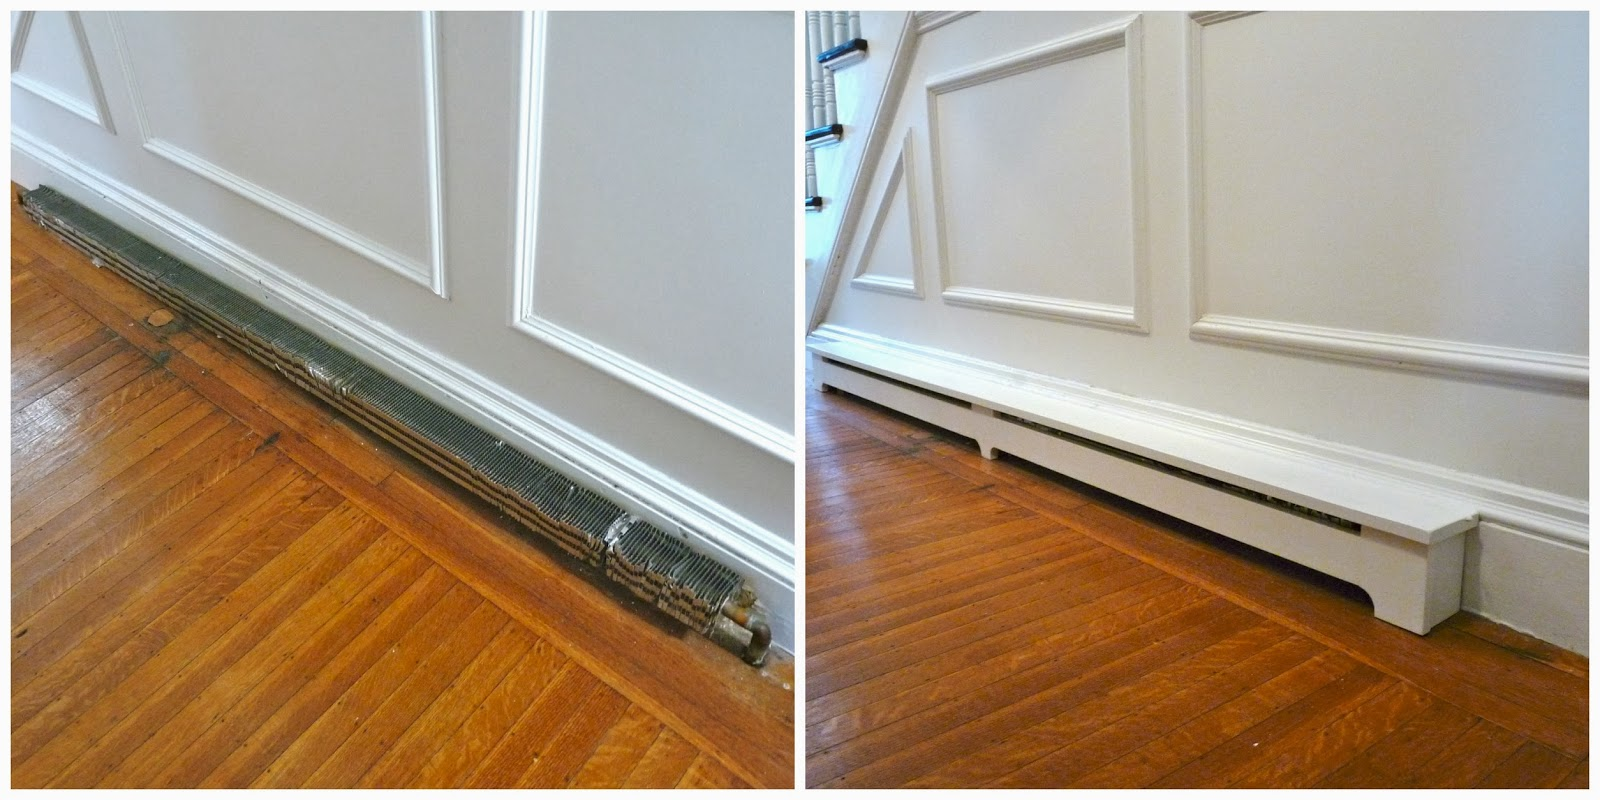 Radiant Baseboard Heating Pictures